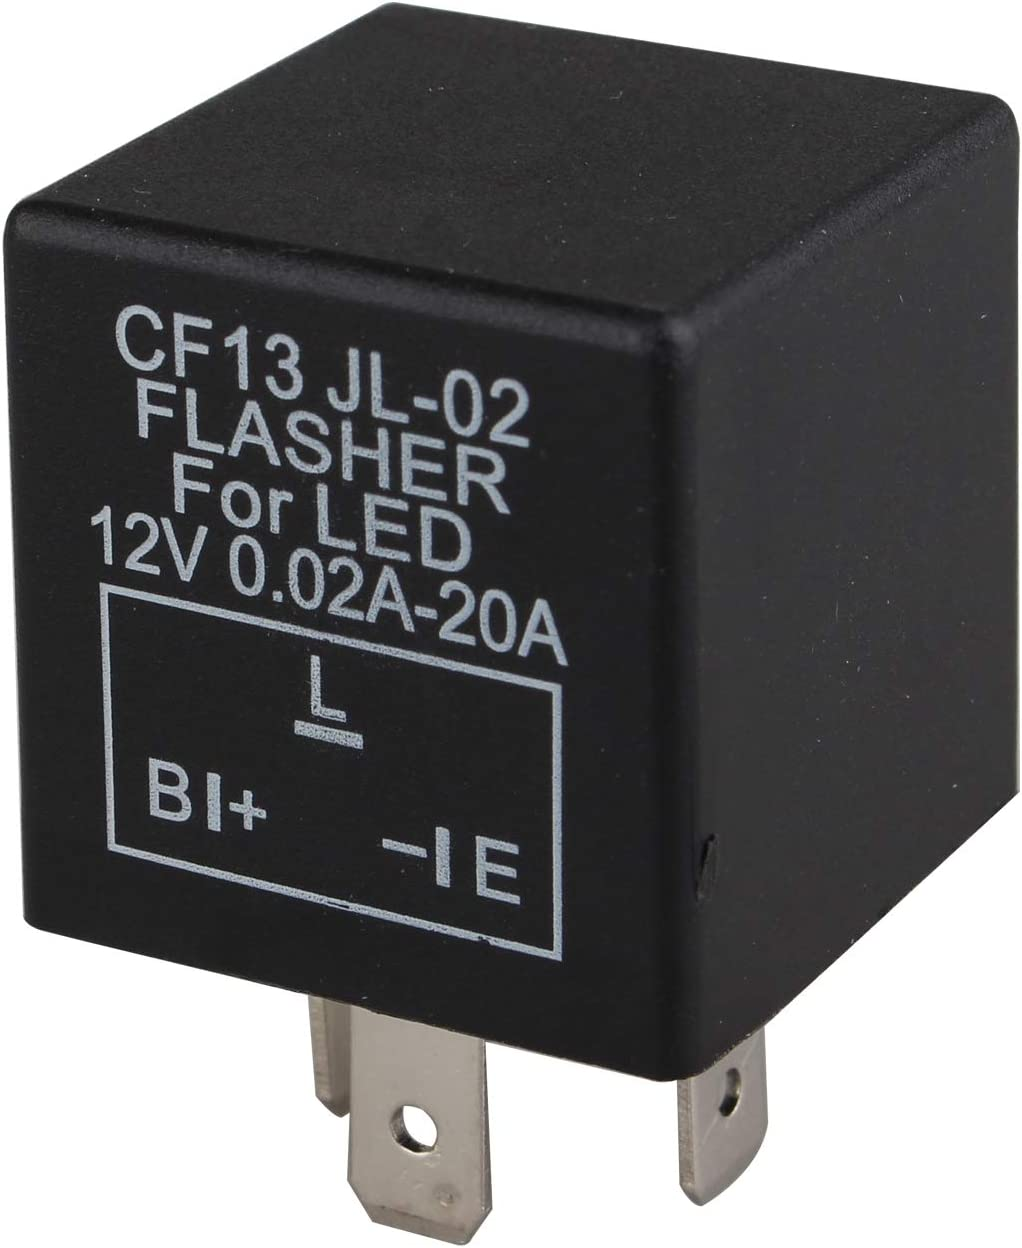 Futheda LED Speed Adjustable Car Flasher Relay Turn Signal 3 Pin 12V Motorbike Electronic Flasher Blinker Relay to Fix Indicator LED Light Compatible with Car CF13 JL-02 0.02A-20A